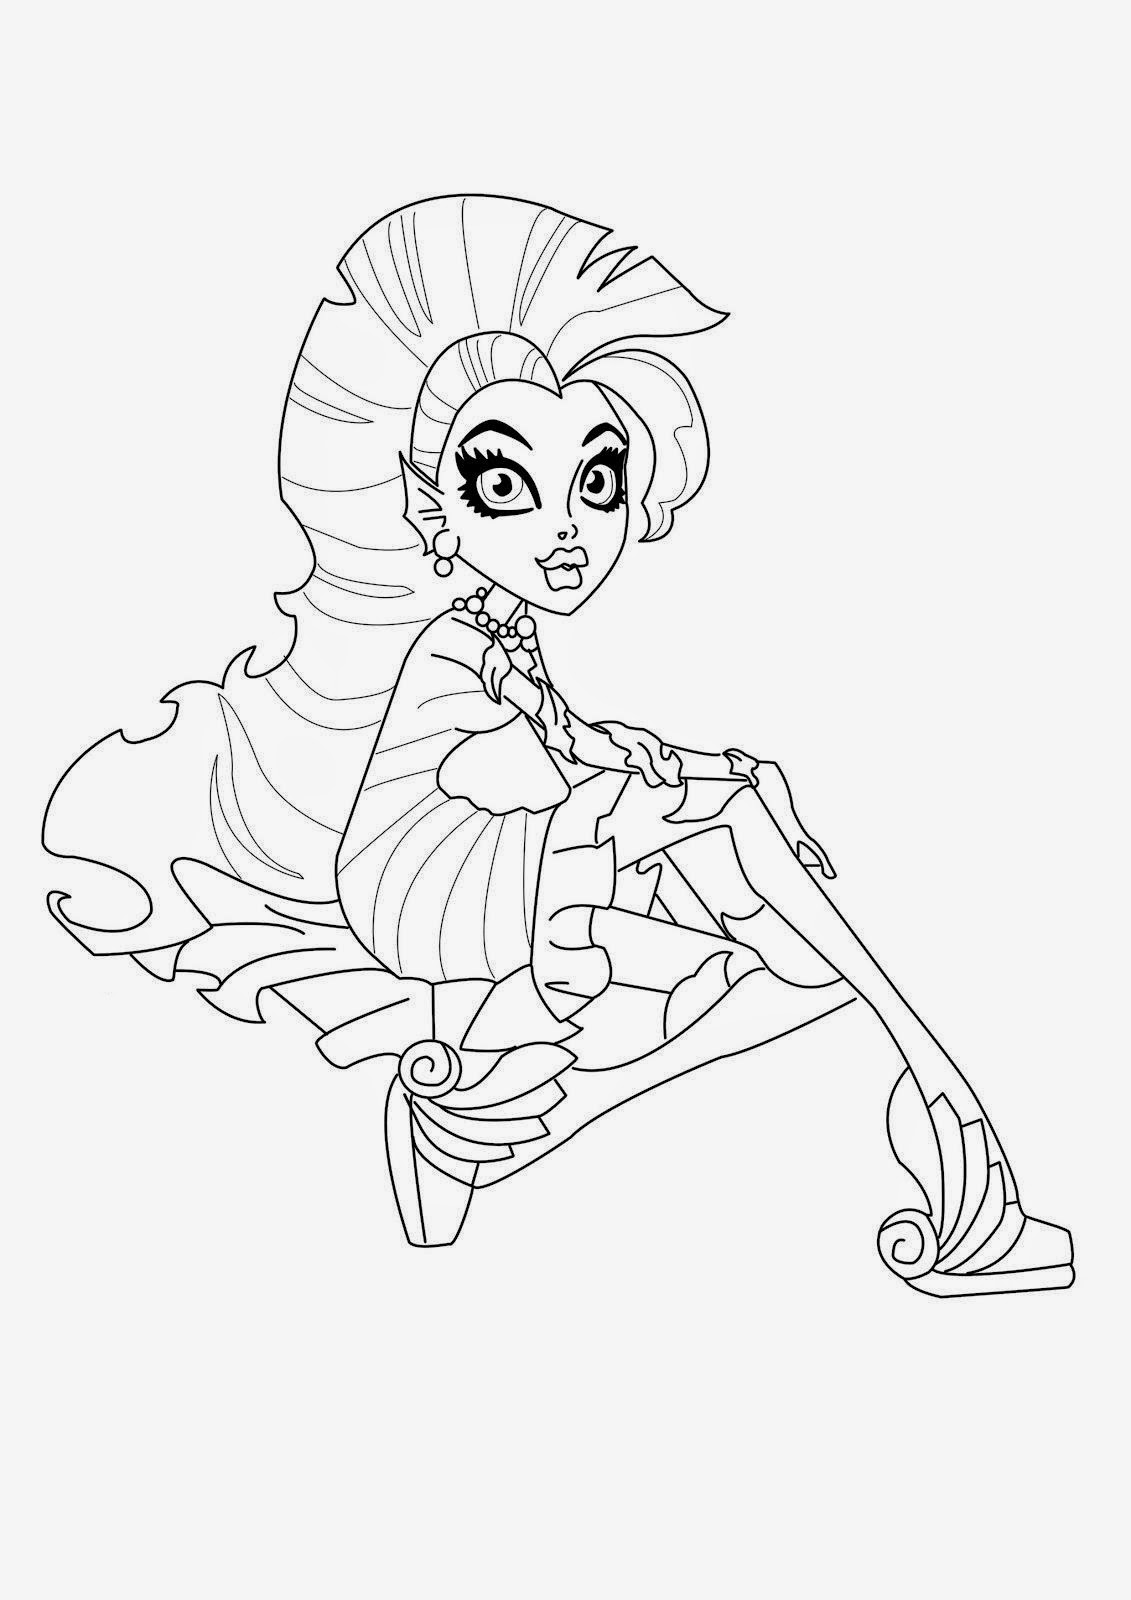 monster high color pages free coloring pages monster high coloring pages free and printable monster free color pages high